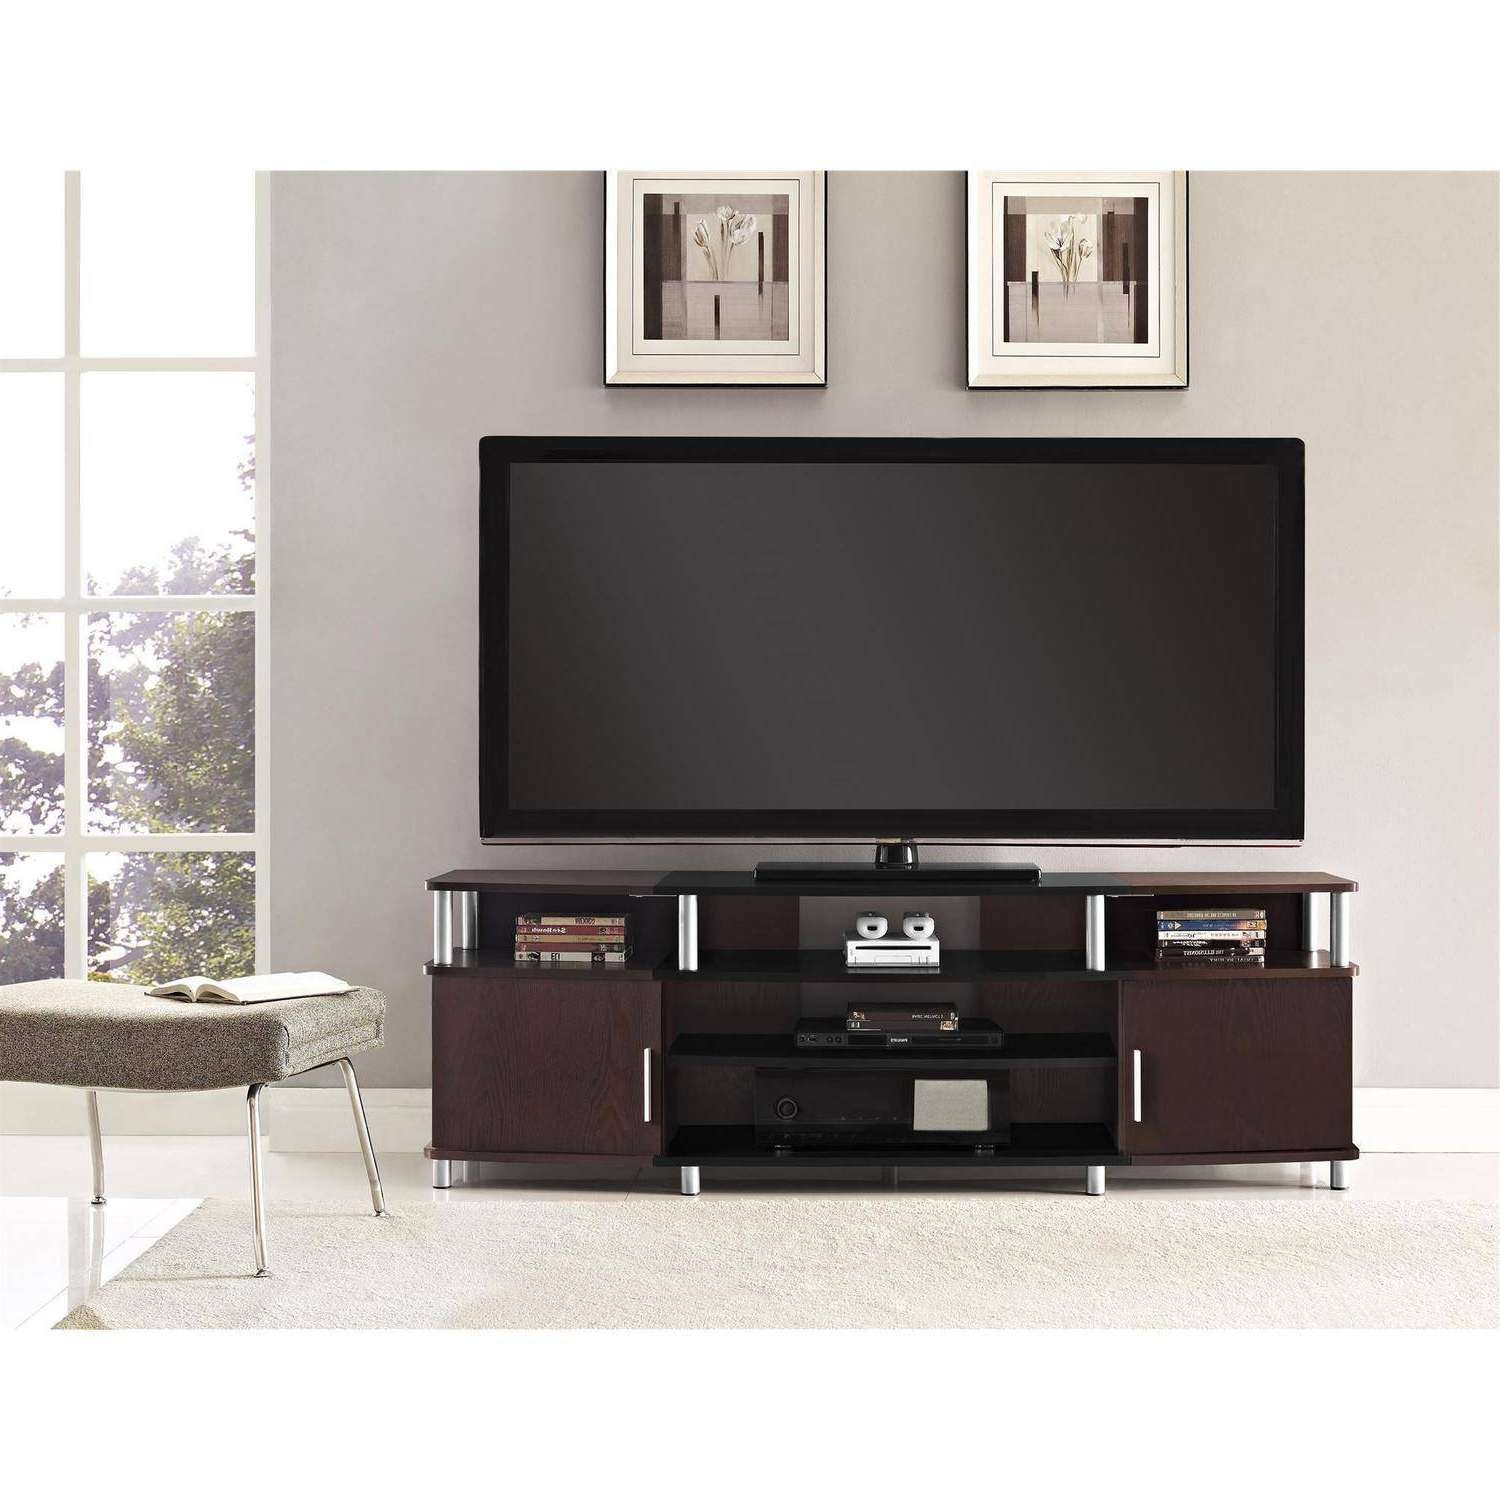 Cherry Wood Tv Stands For A 55 Inch Tv Standscherry Wood Tv Stands With Cherry Wood Tv Cabinets (View 6 of 20)